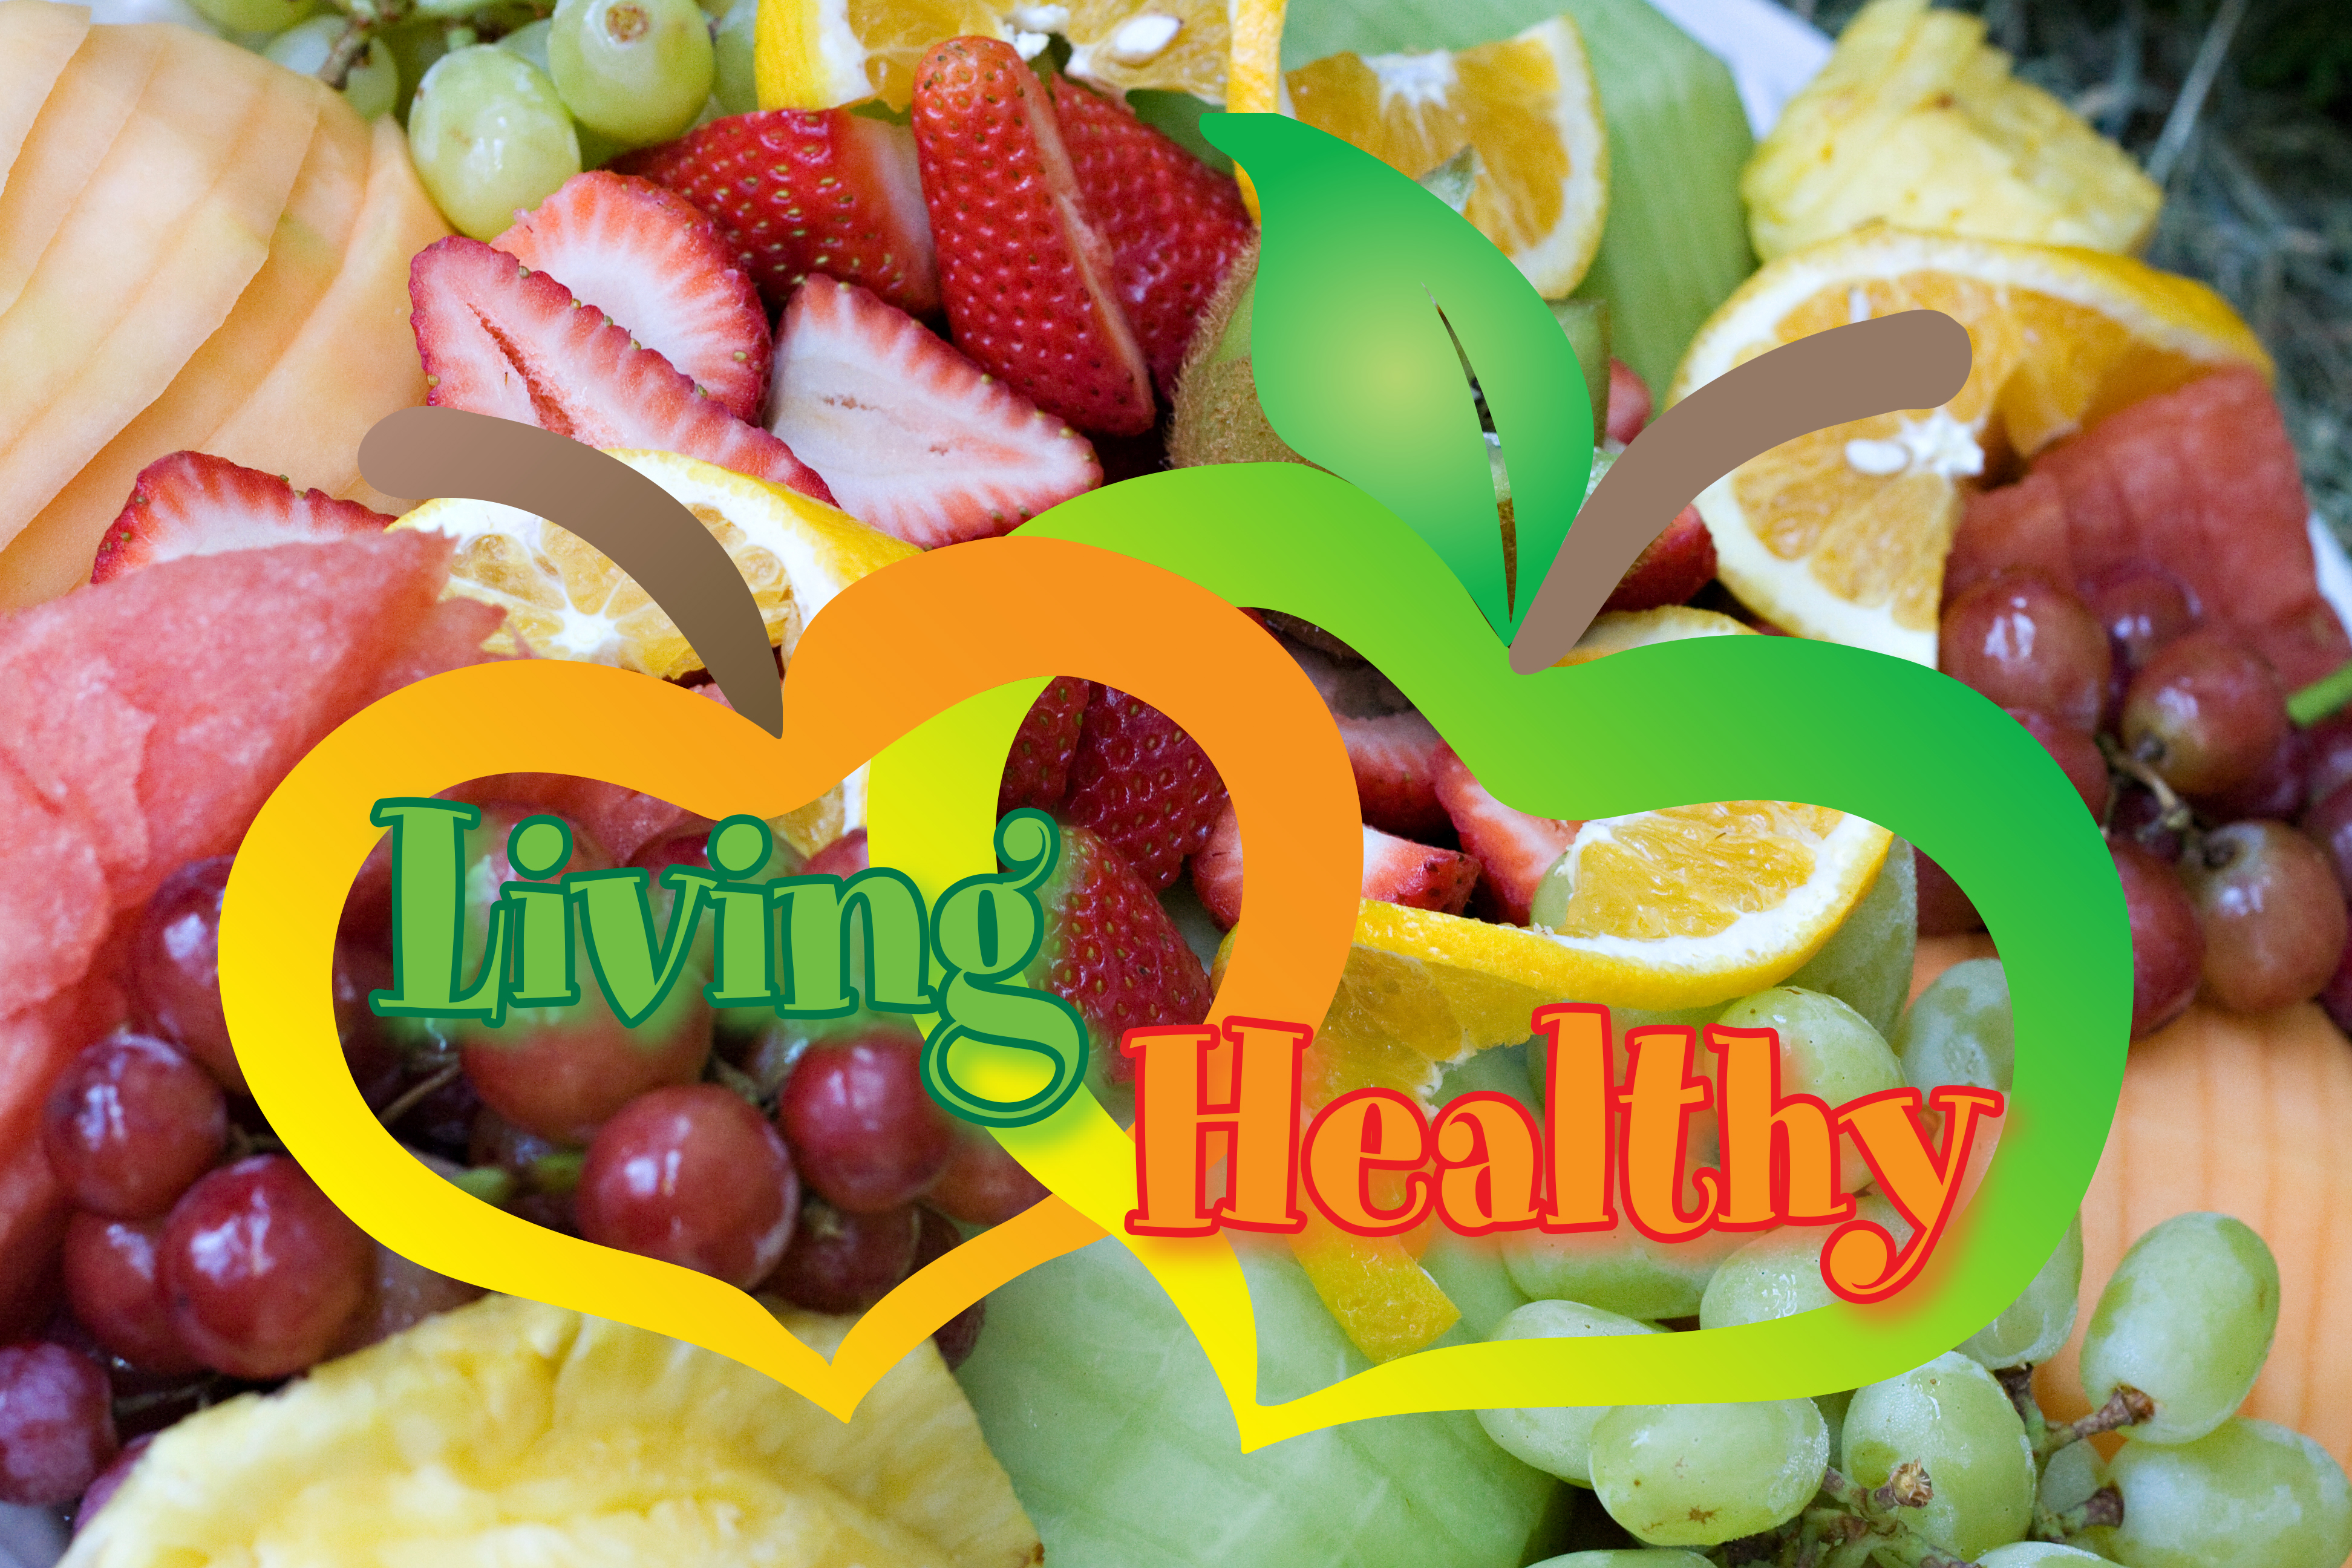 Healthy Options For All Divisions - Catering Services in Vancouver BC